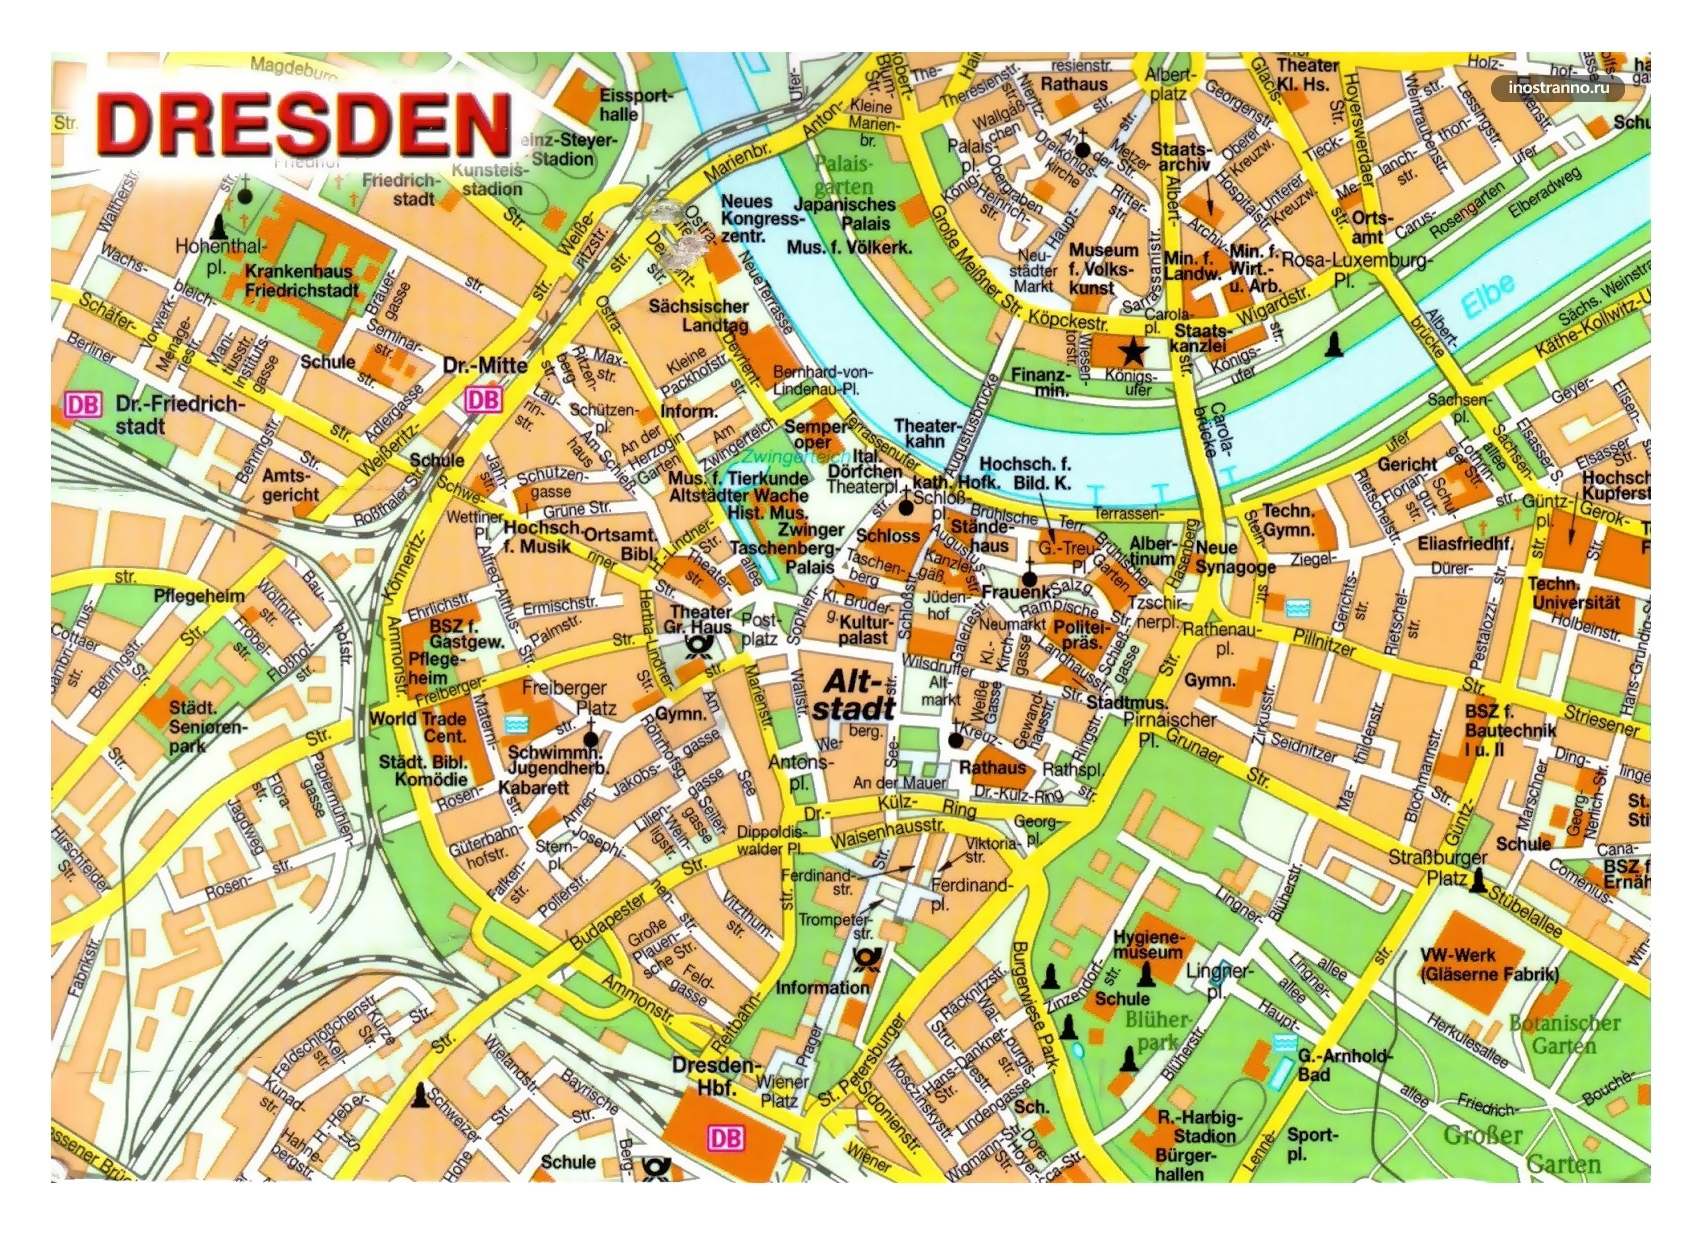 Large Detailed Map Of Central Part Of Dresden City | Dresden with regard to Dresden Germany City Map